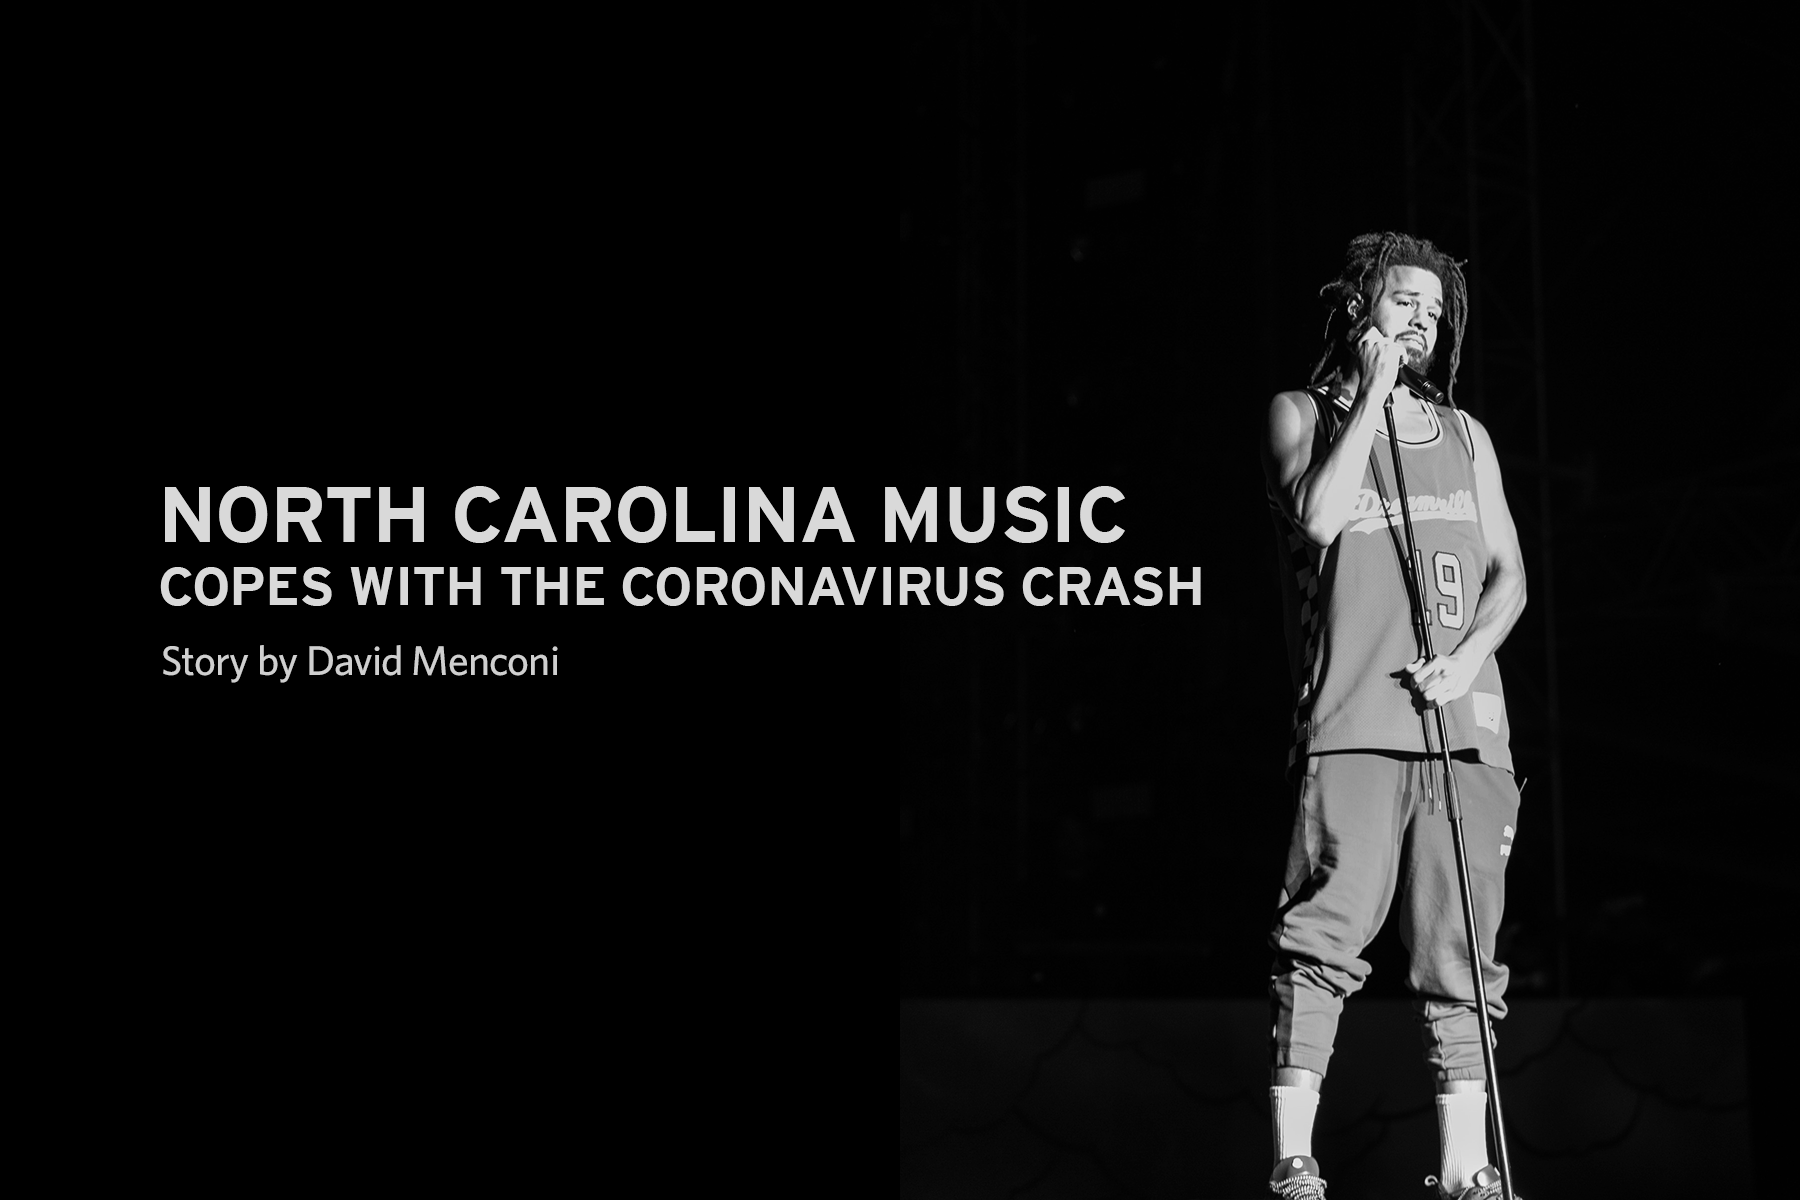 Image of J. Cole with article title: North Carolina Music Copes with the Coronavirus Crash by David Menconi